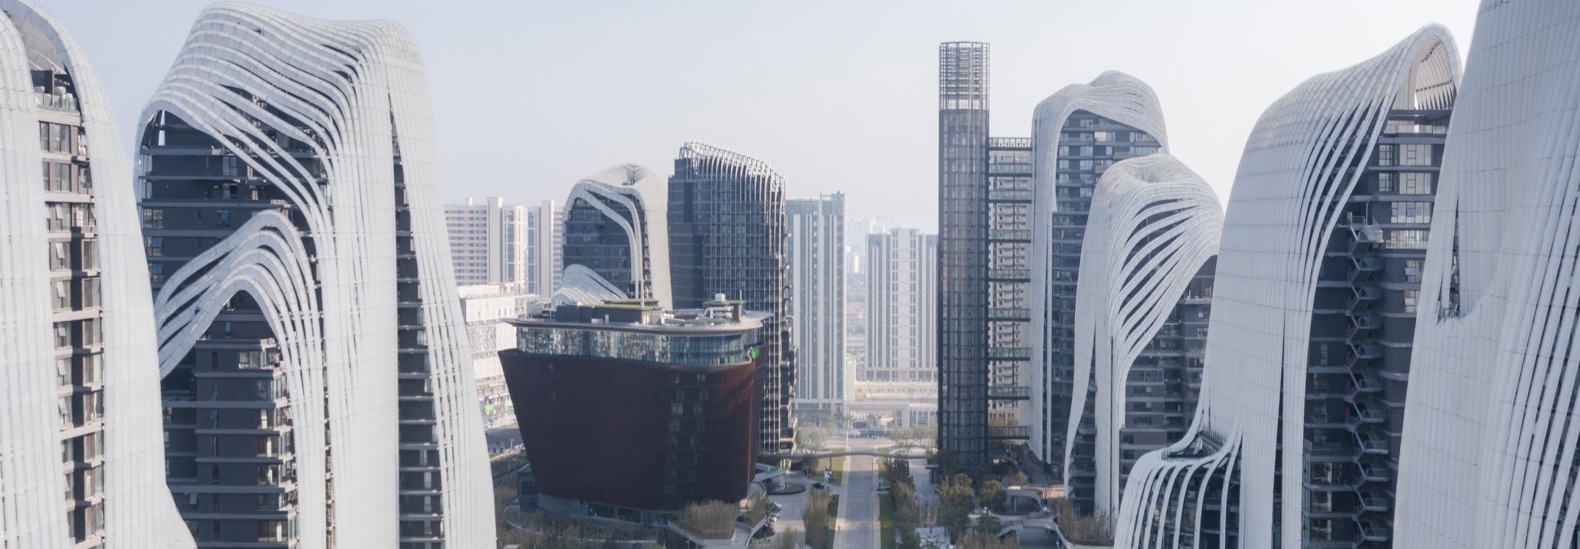 MAD Architects' curvaceous Himalayas Center nears completion in Nanjing